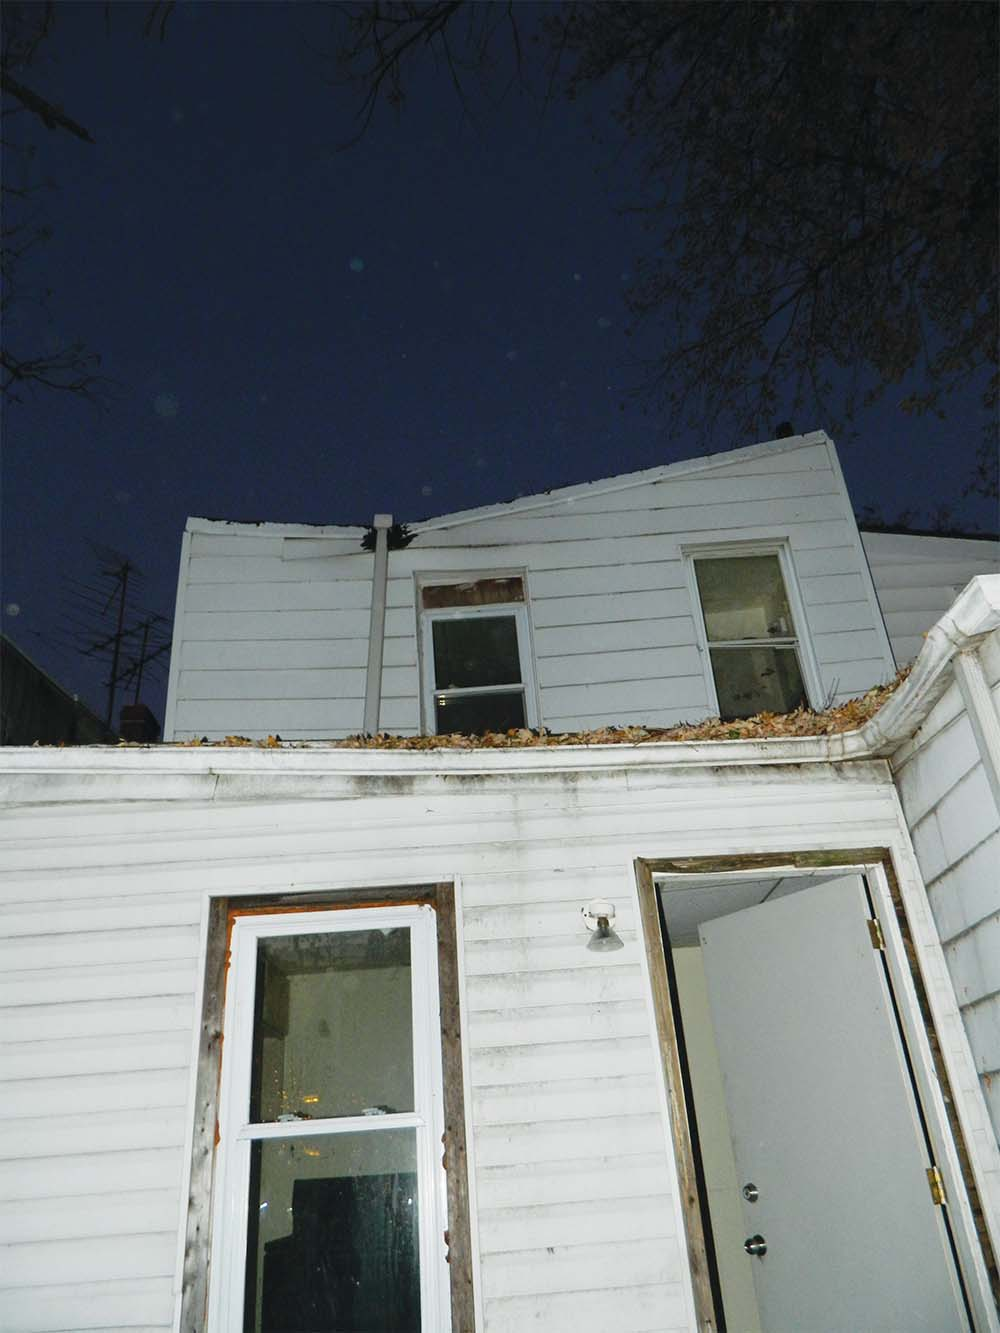 She said: he's a slumlord – He said: she's a deadbeat – City says both sides have issues